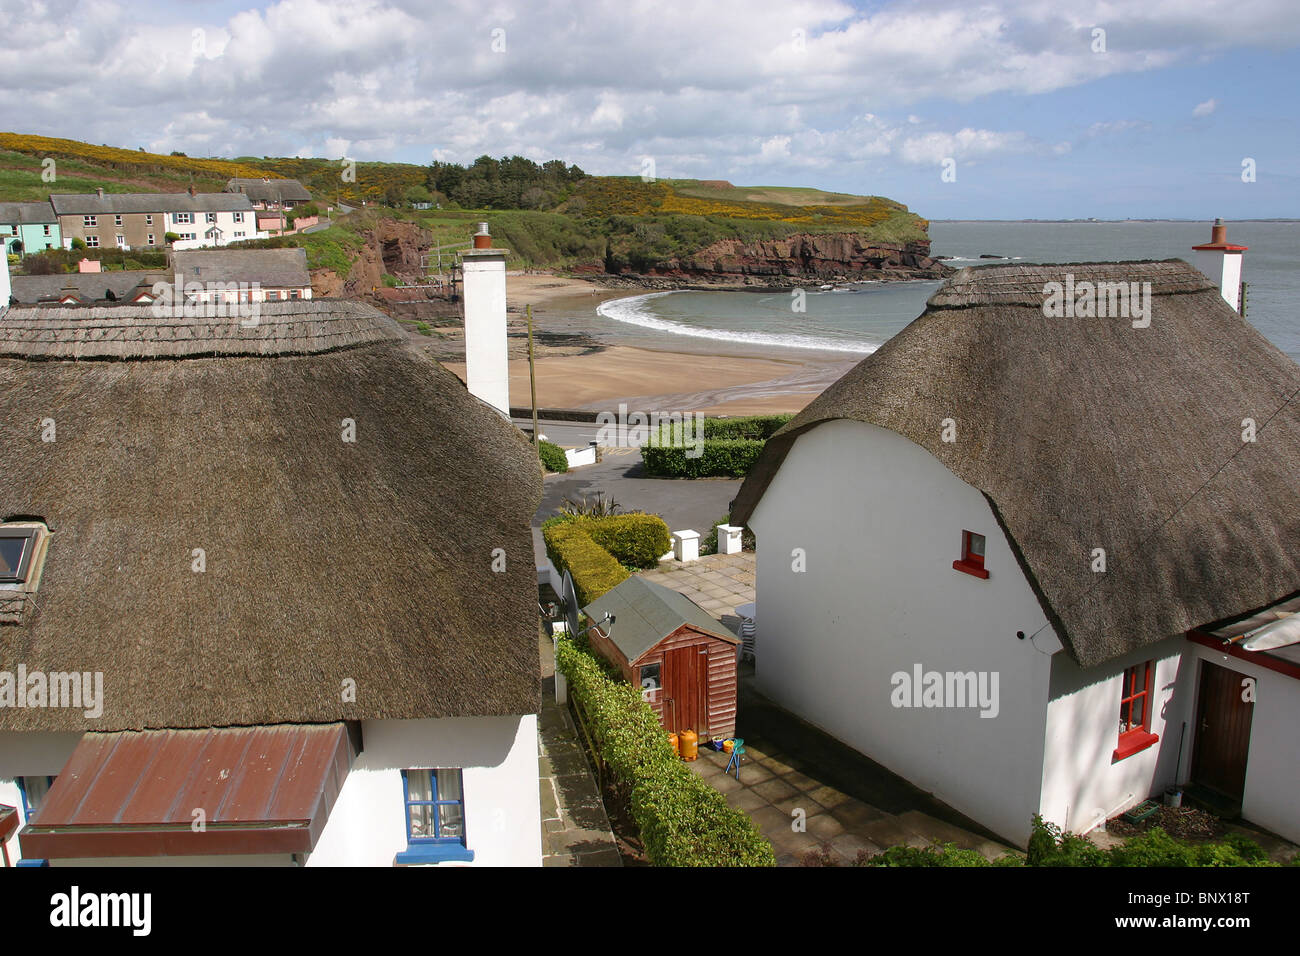 Ireland, Waterford, Dunmore East, Beach And Thatched Cottages